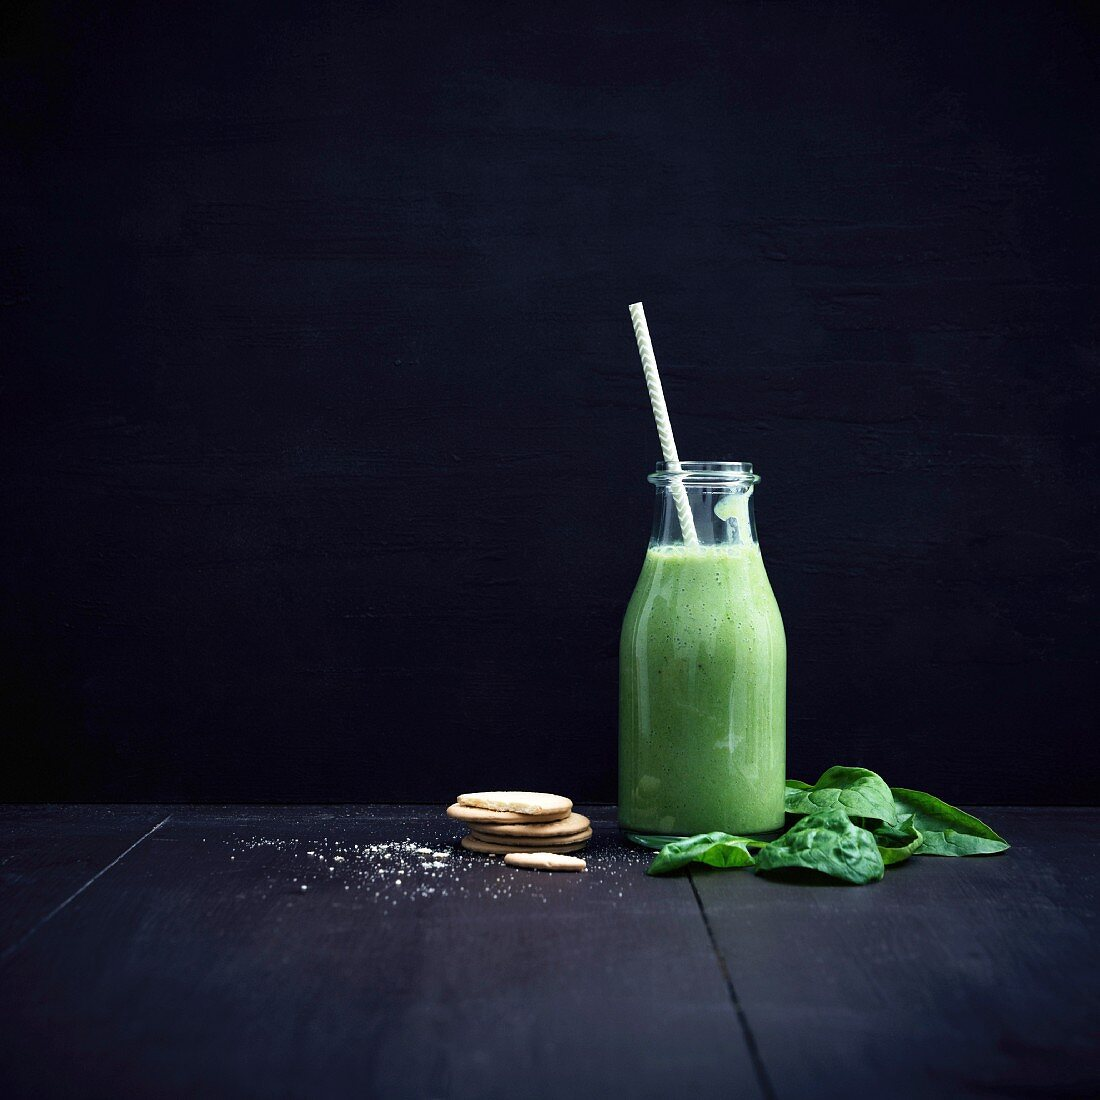 Vegan green smoothie with leaf spinach in a glass bottle